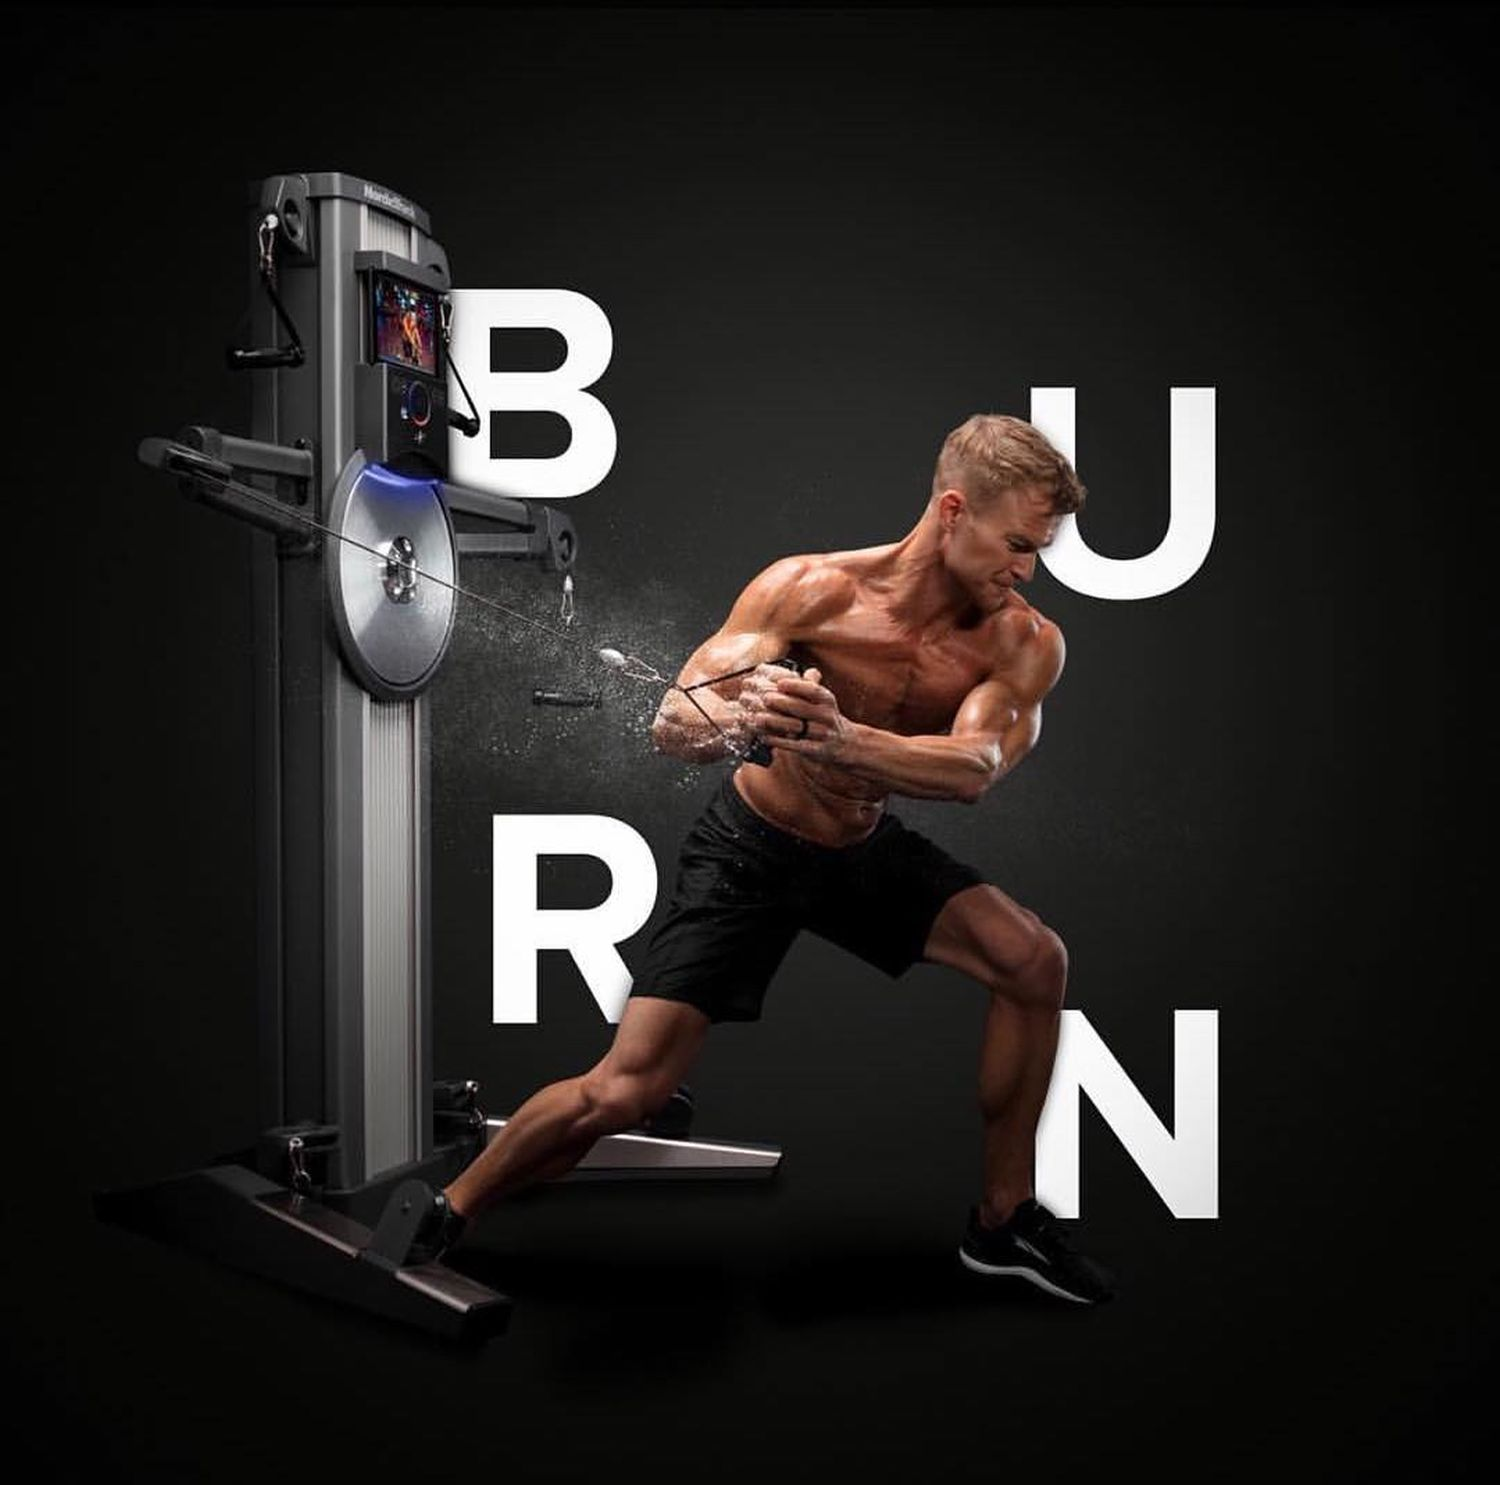 COMBINES STRENGTHWITH CARDIO - IN ONE MACHINE